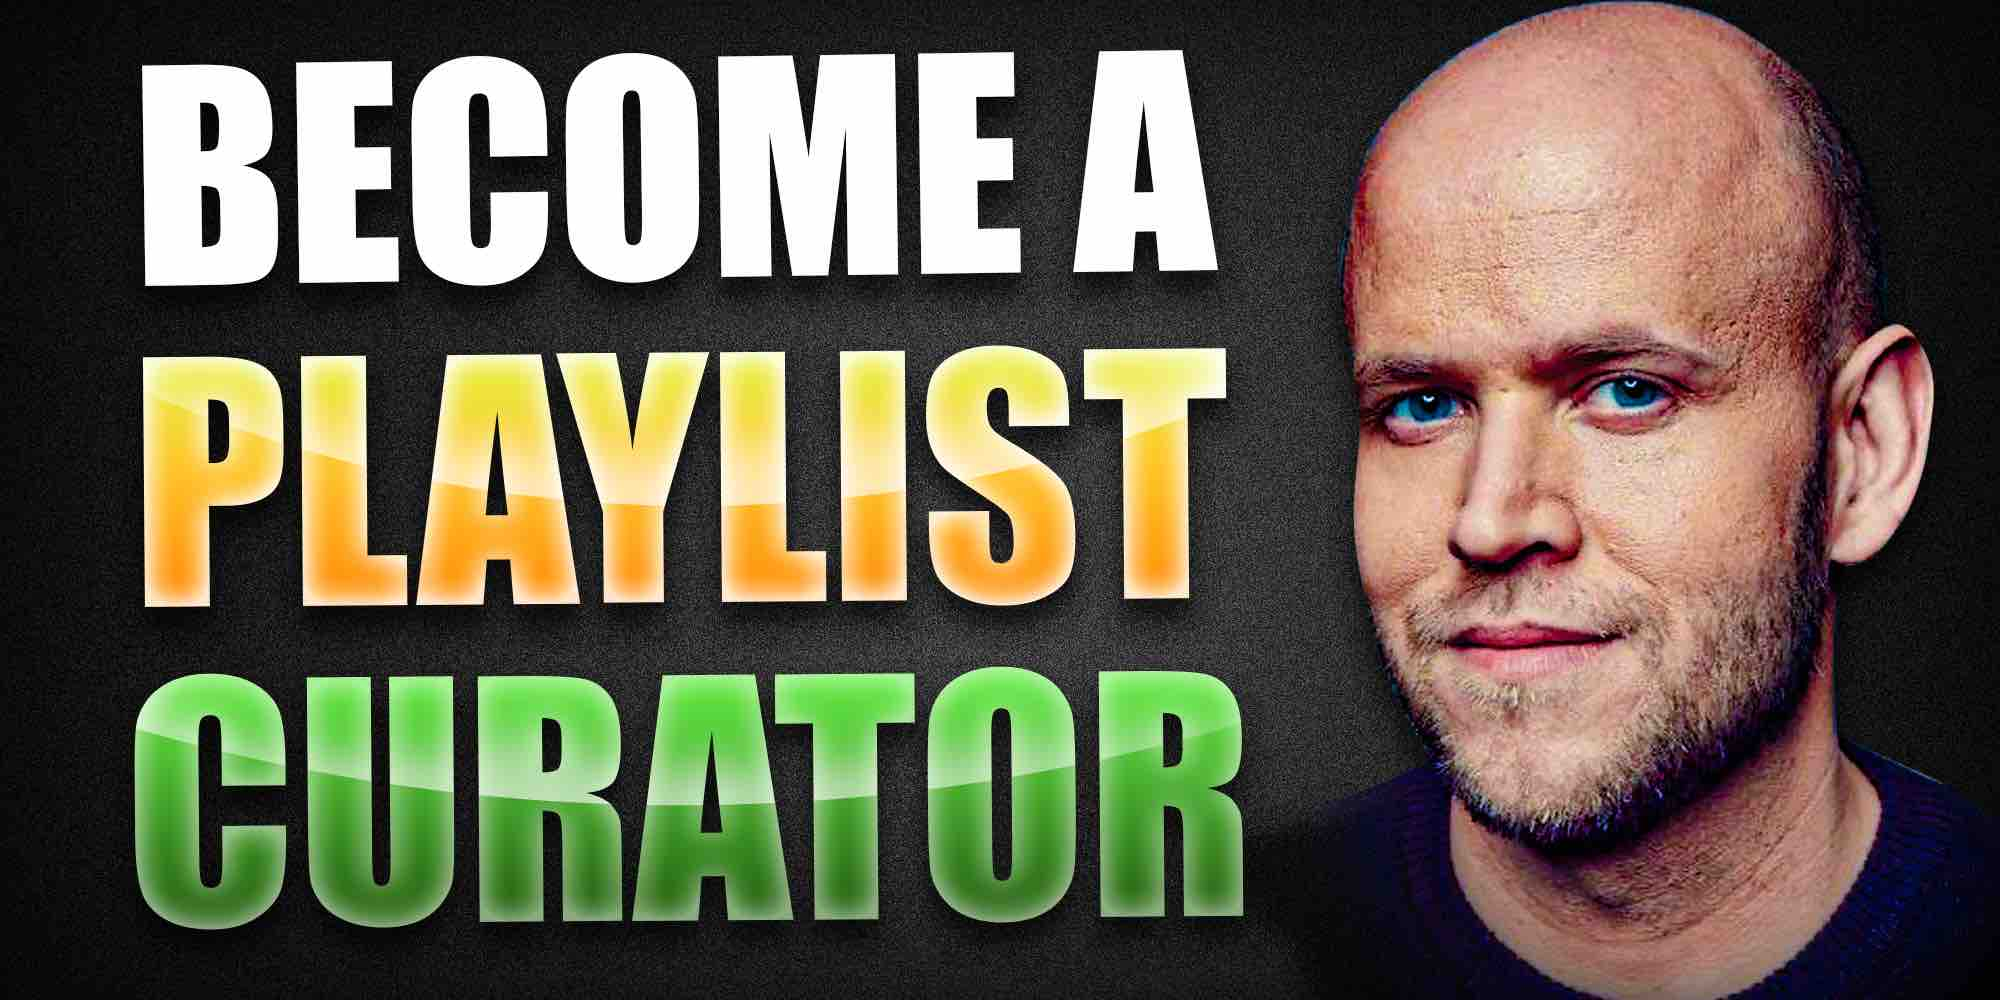 Become a Playlist Curator